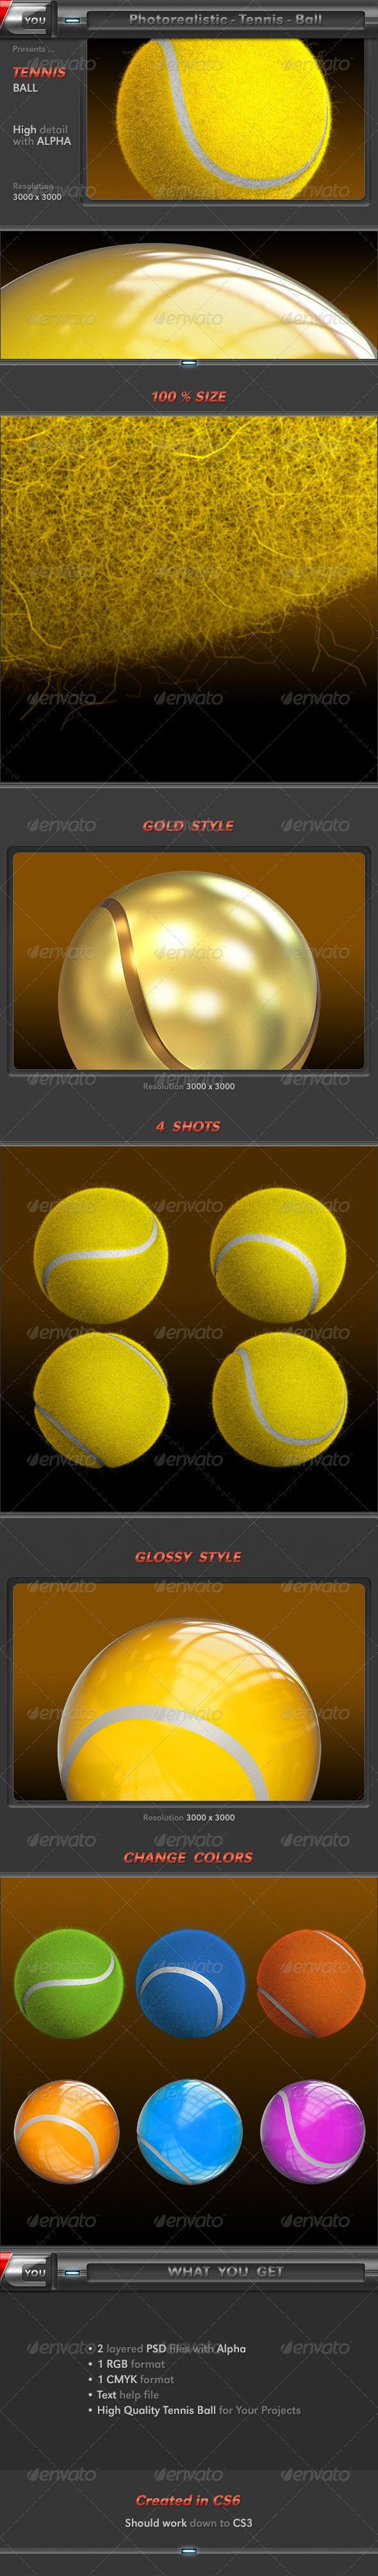 Tennis Ball - Objects 3D Renders